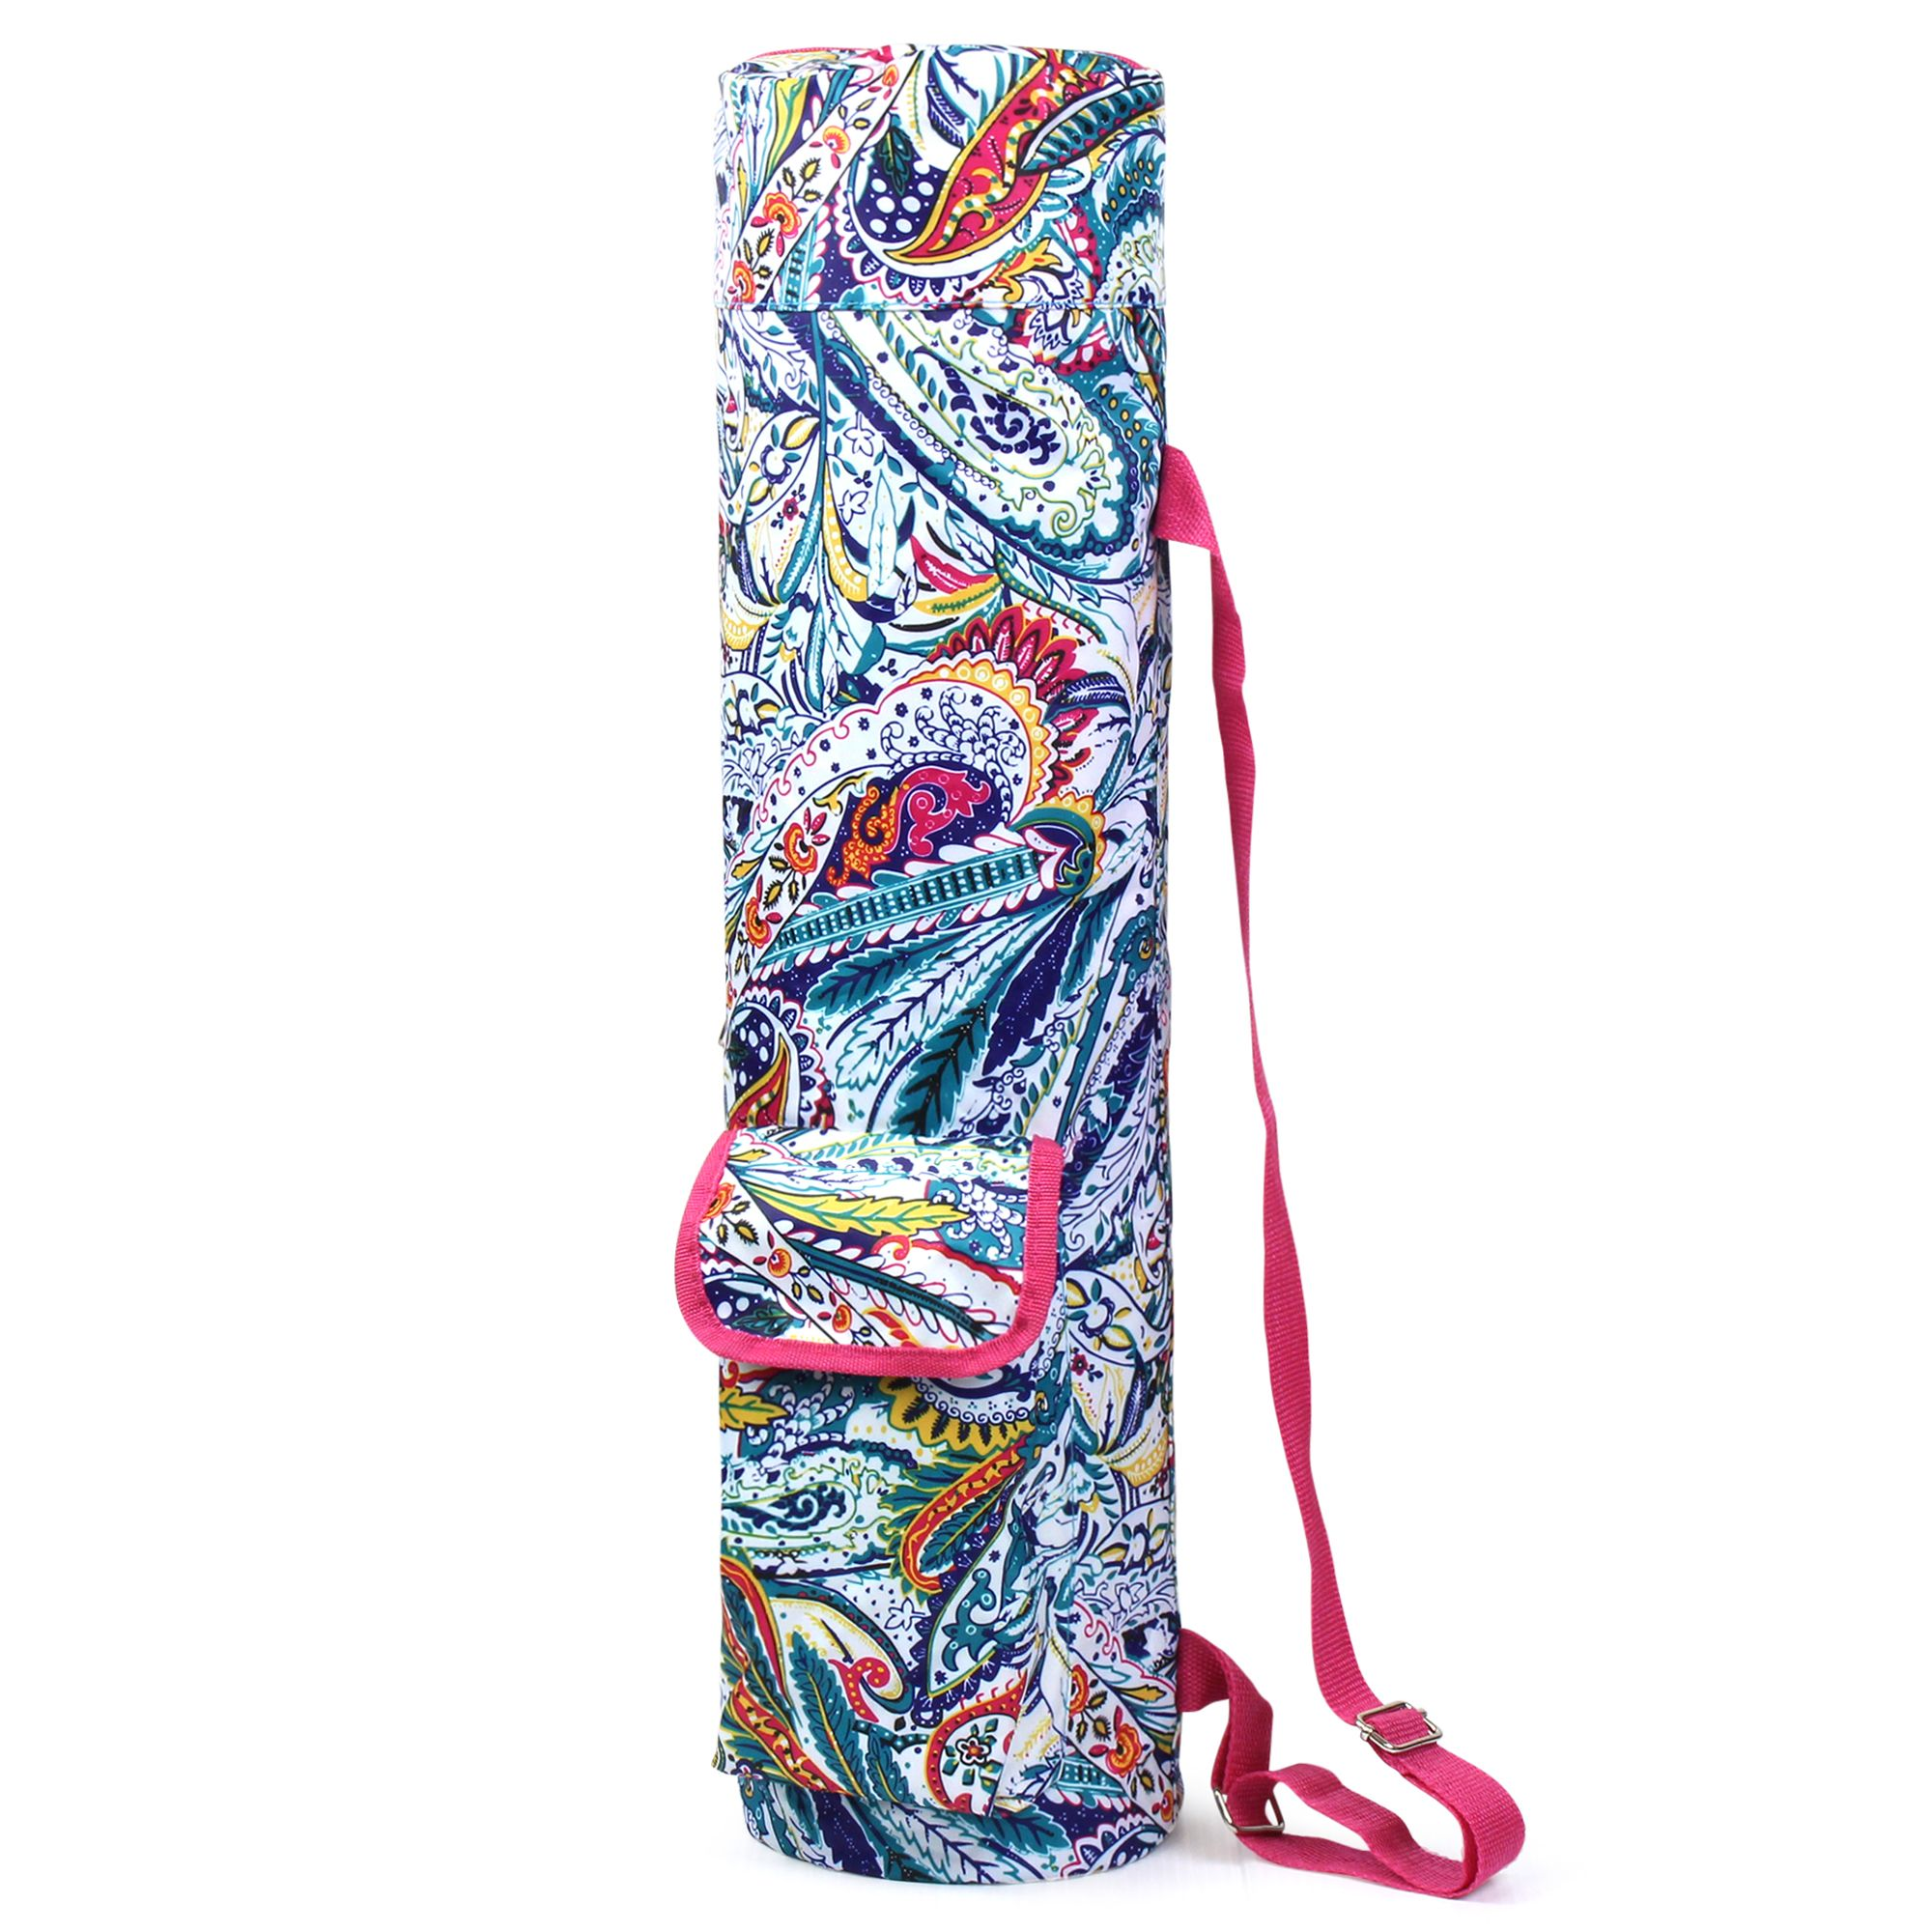 Lightweight Durable Full-Zip Yoga Mat Sports Bag by Zodaca with Pocket & Adjustable Shoulder Strap - Multicolor Paisley